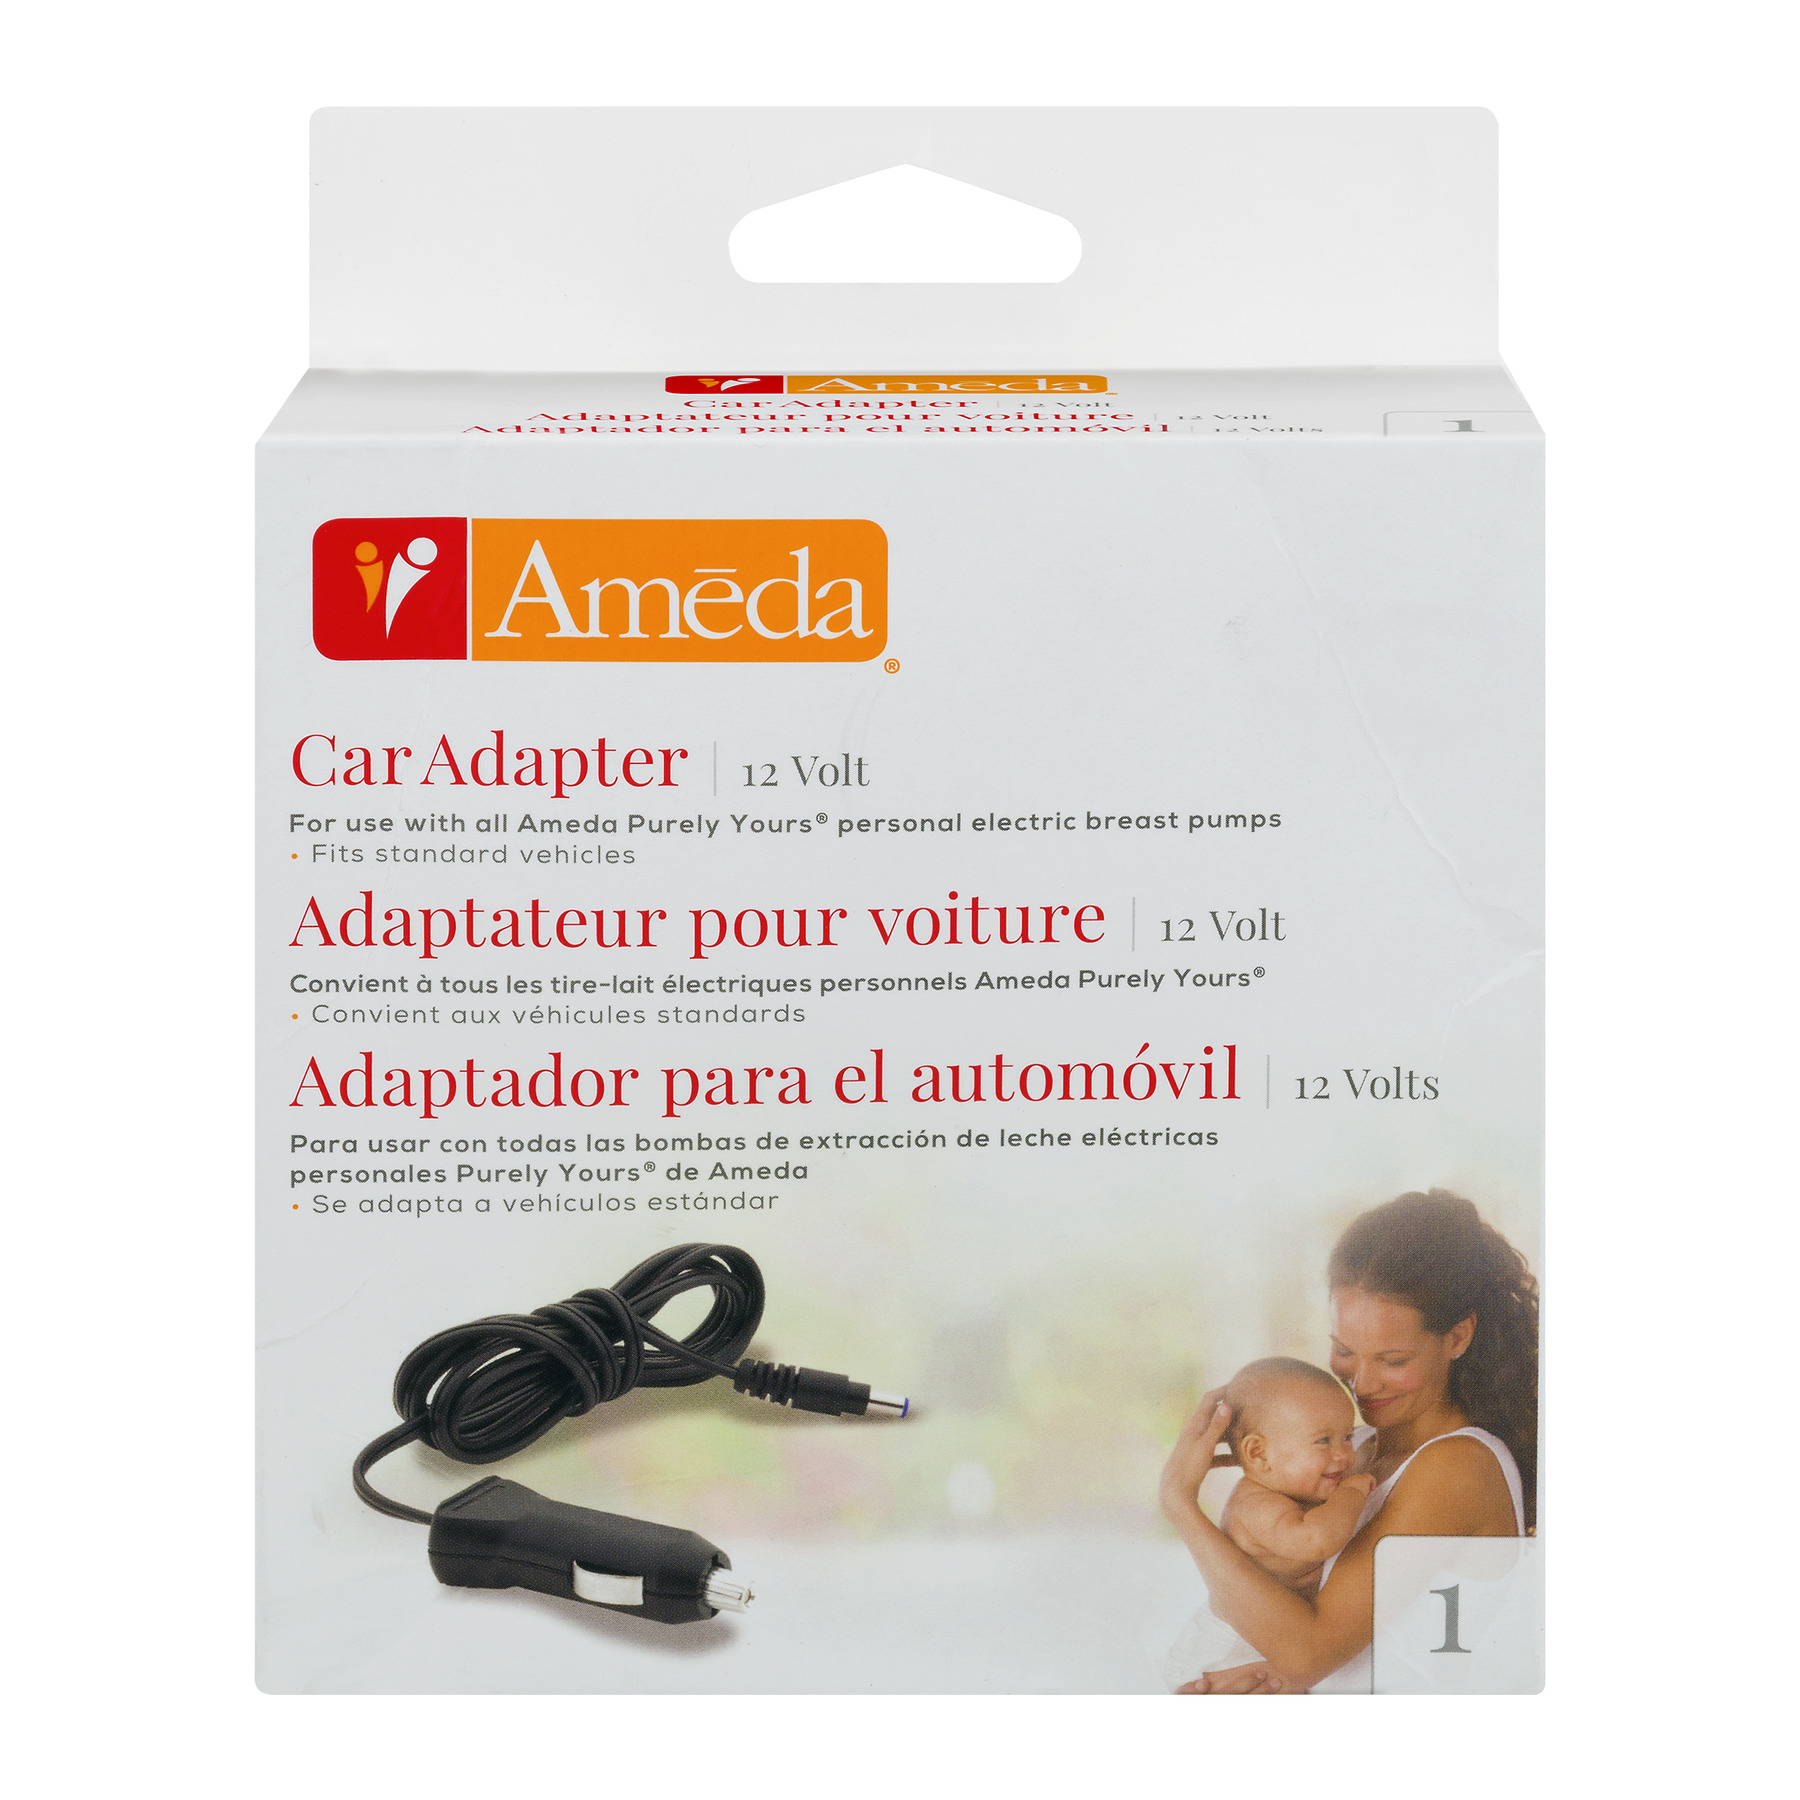 Ameda Car Adapter For All Ameda Purely Yours Personal Electric Breast Pumps, 1.0 CT